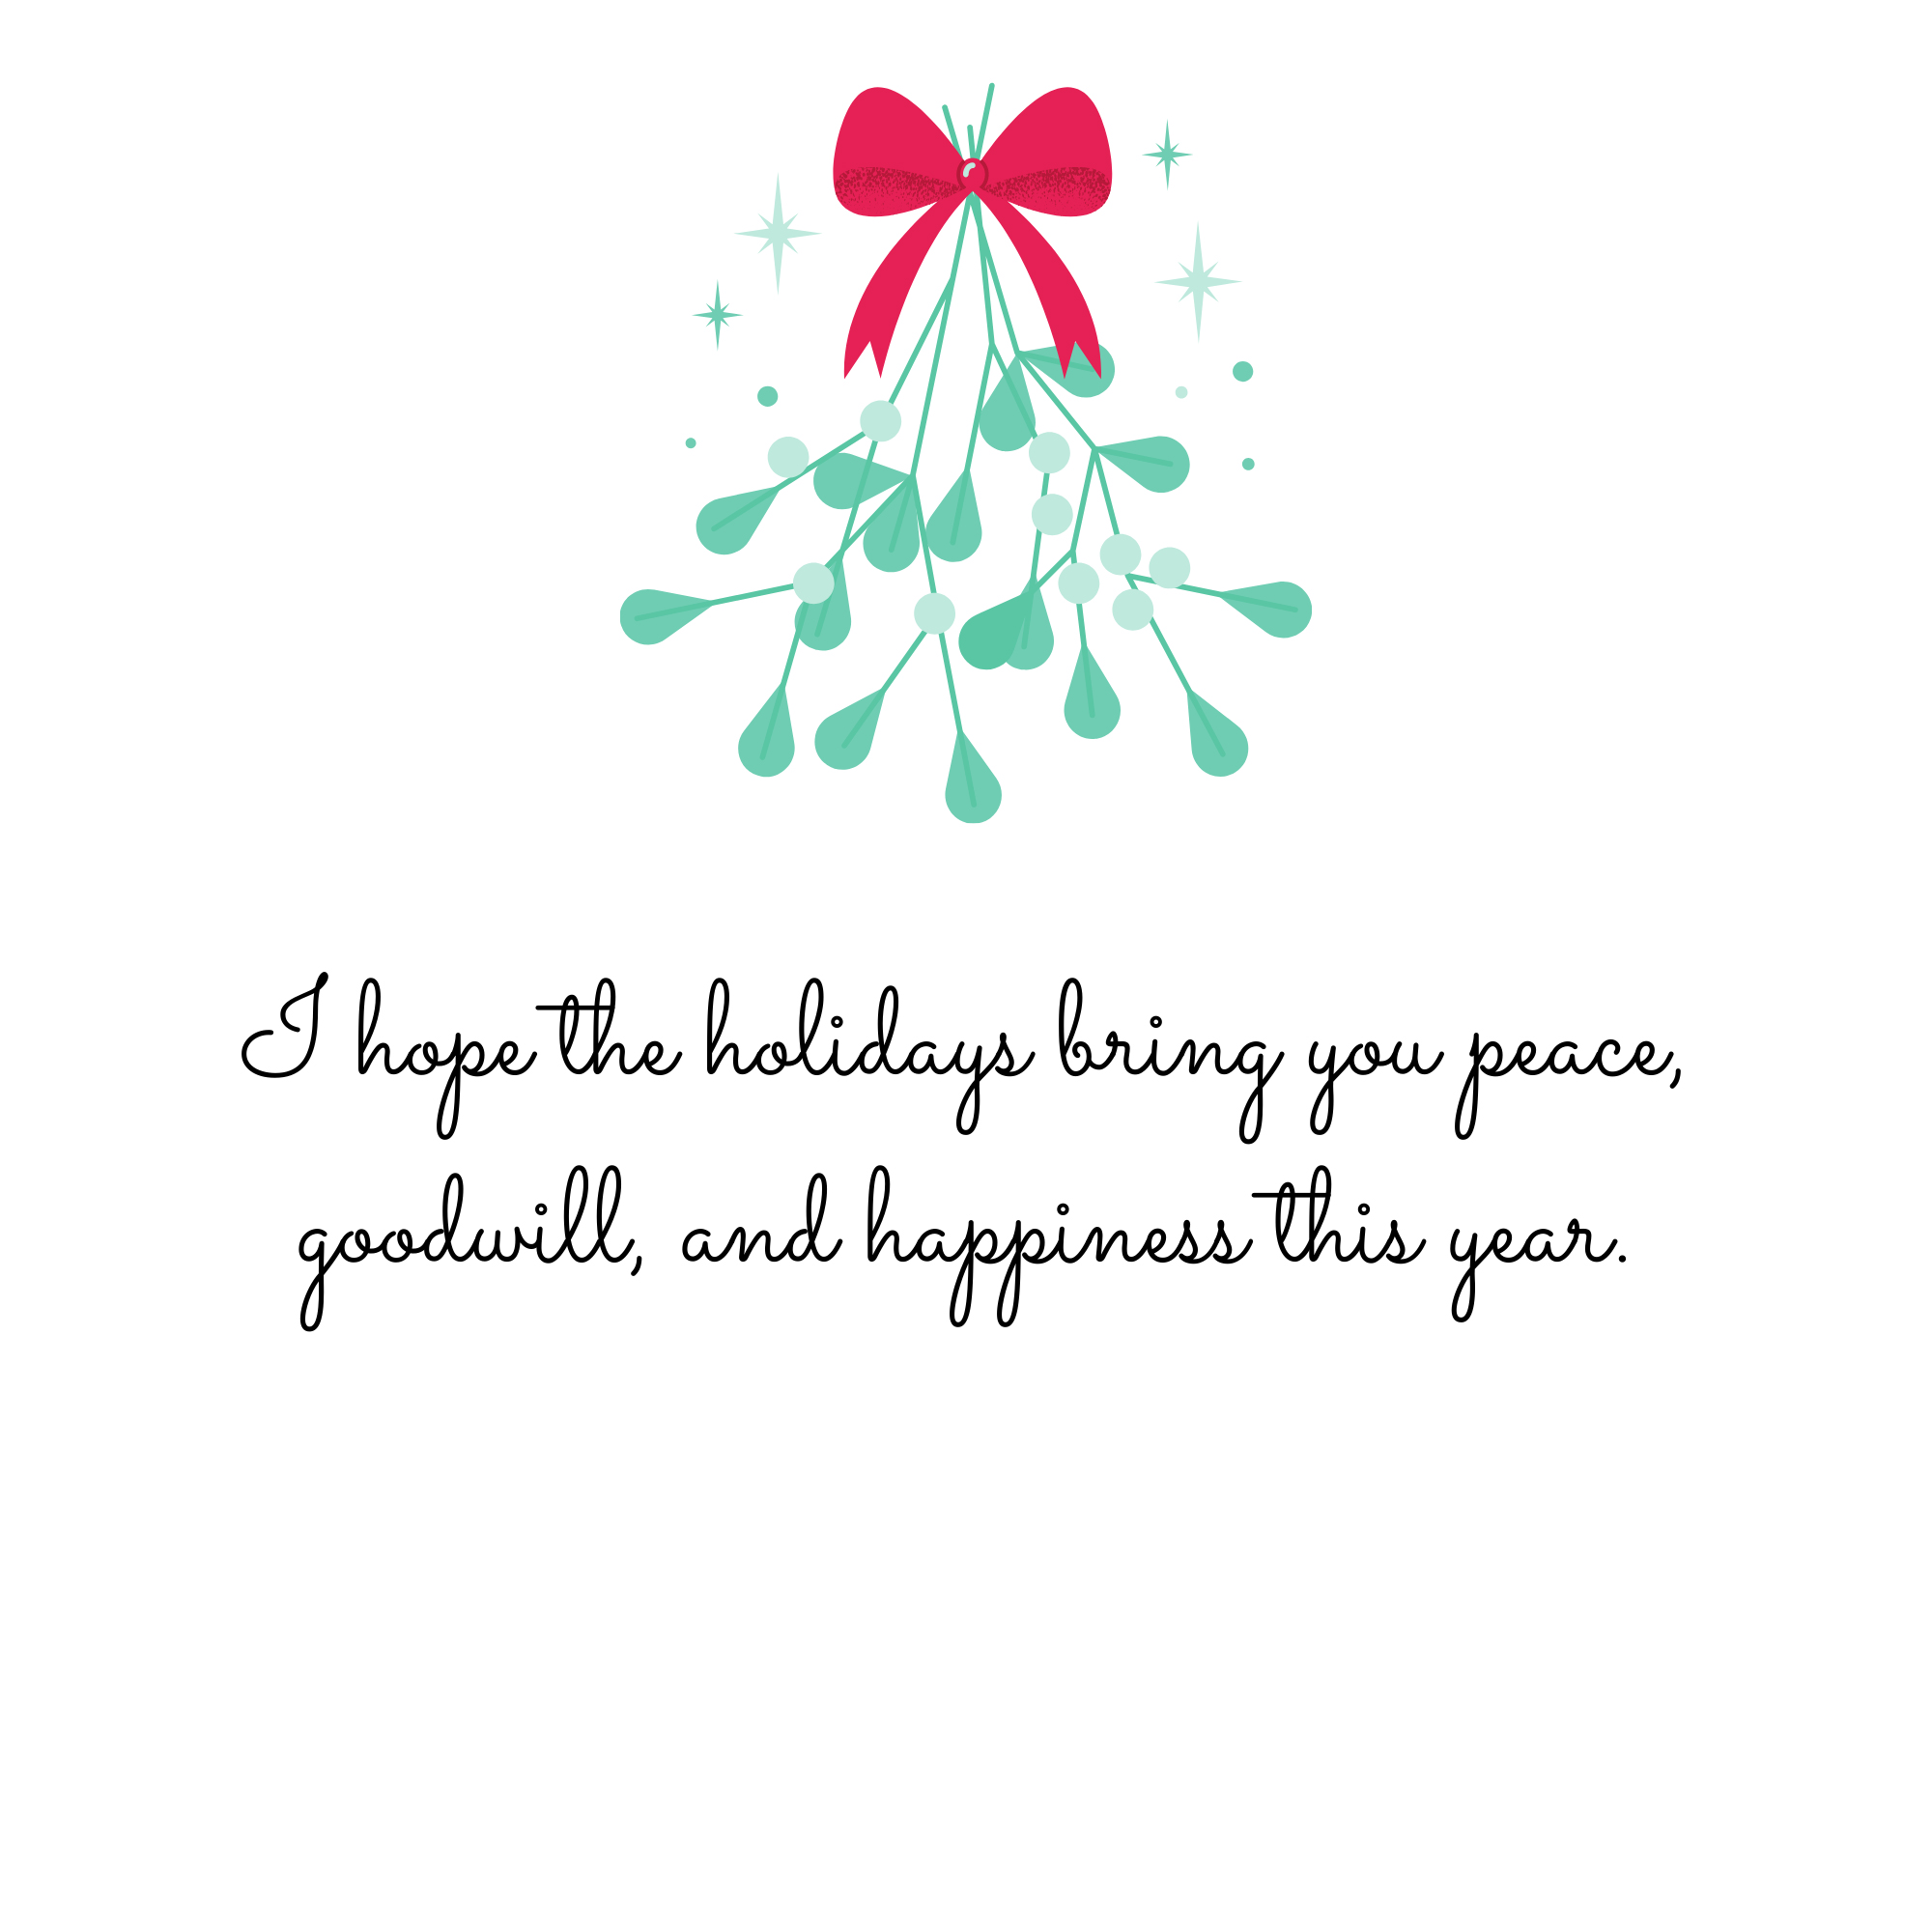 I hope the holidays bring you peace, goodwill, and happiness this year.